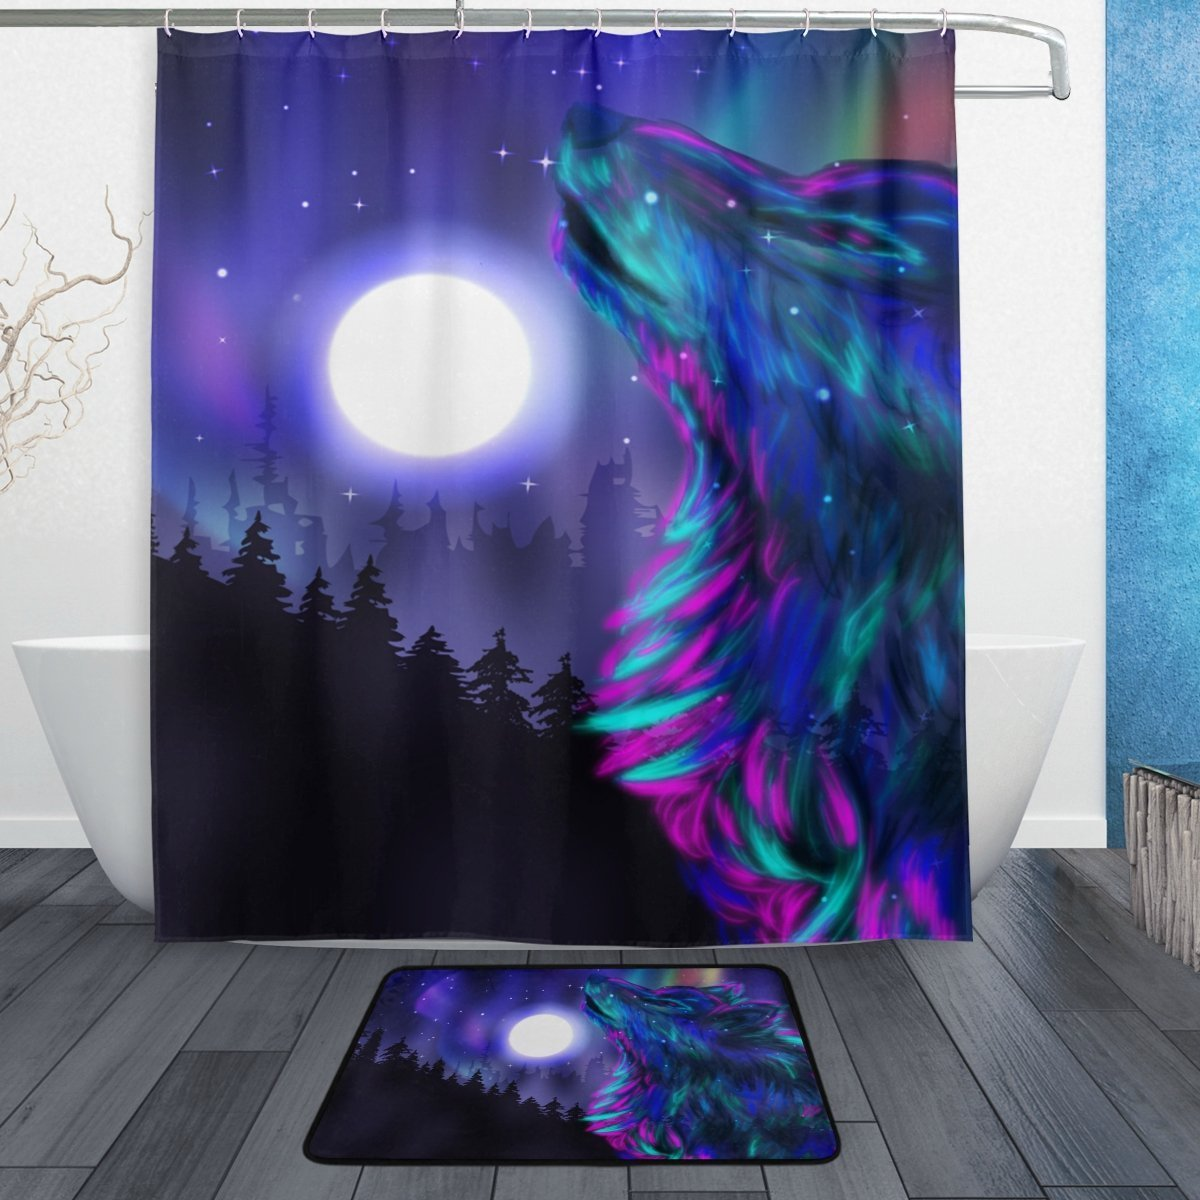 BAIHUISHOP Tree Wolf Moon Night 3-Piece Bathroom Set, Machine Washable for Everyday Use,Includes 60x72 Inch Waterproof Shower Curtain, 12 Shower Hooks and 1 Non-slip Bathroom Rug Carpet - Set of 3